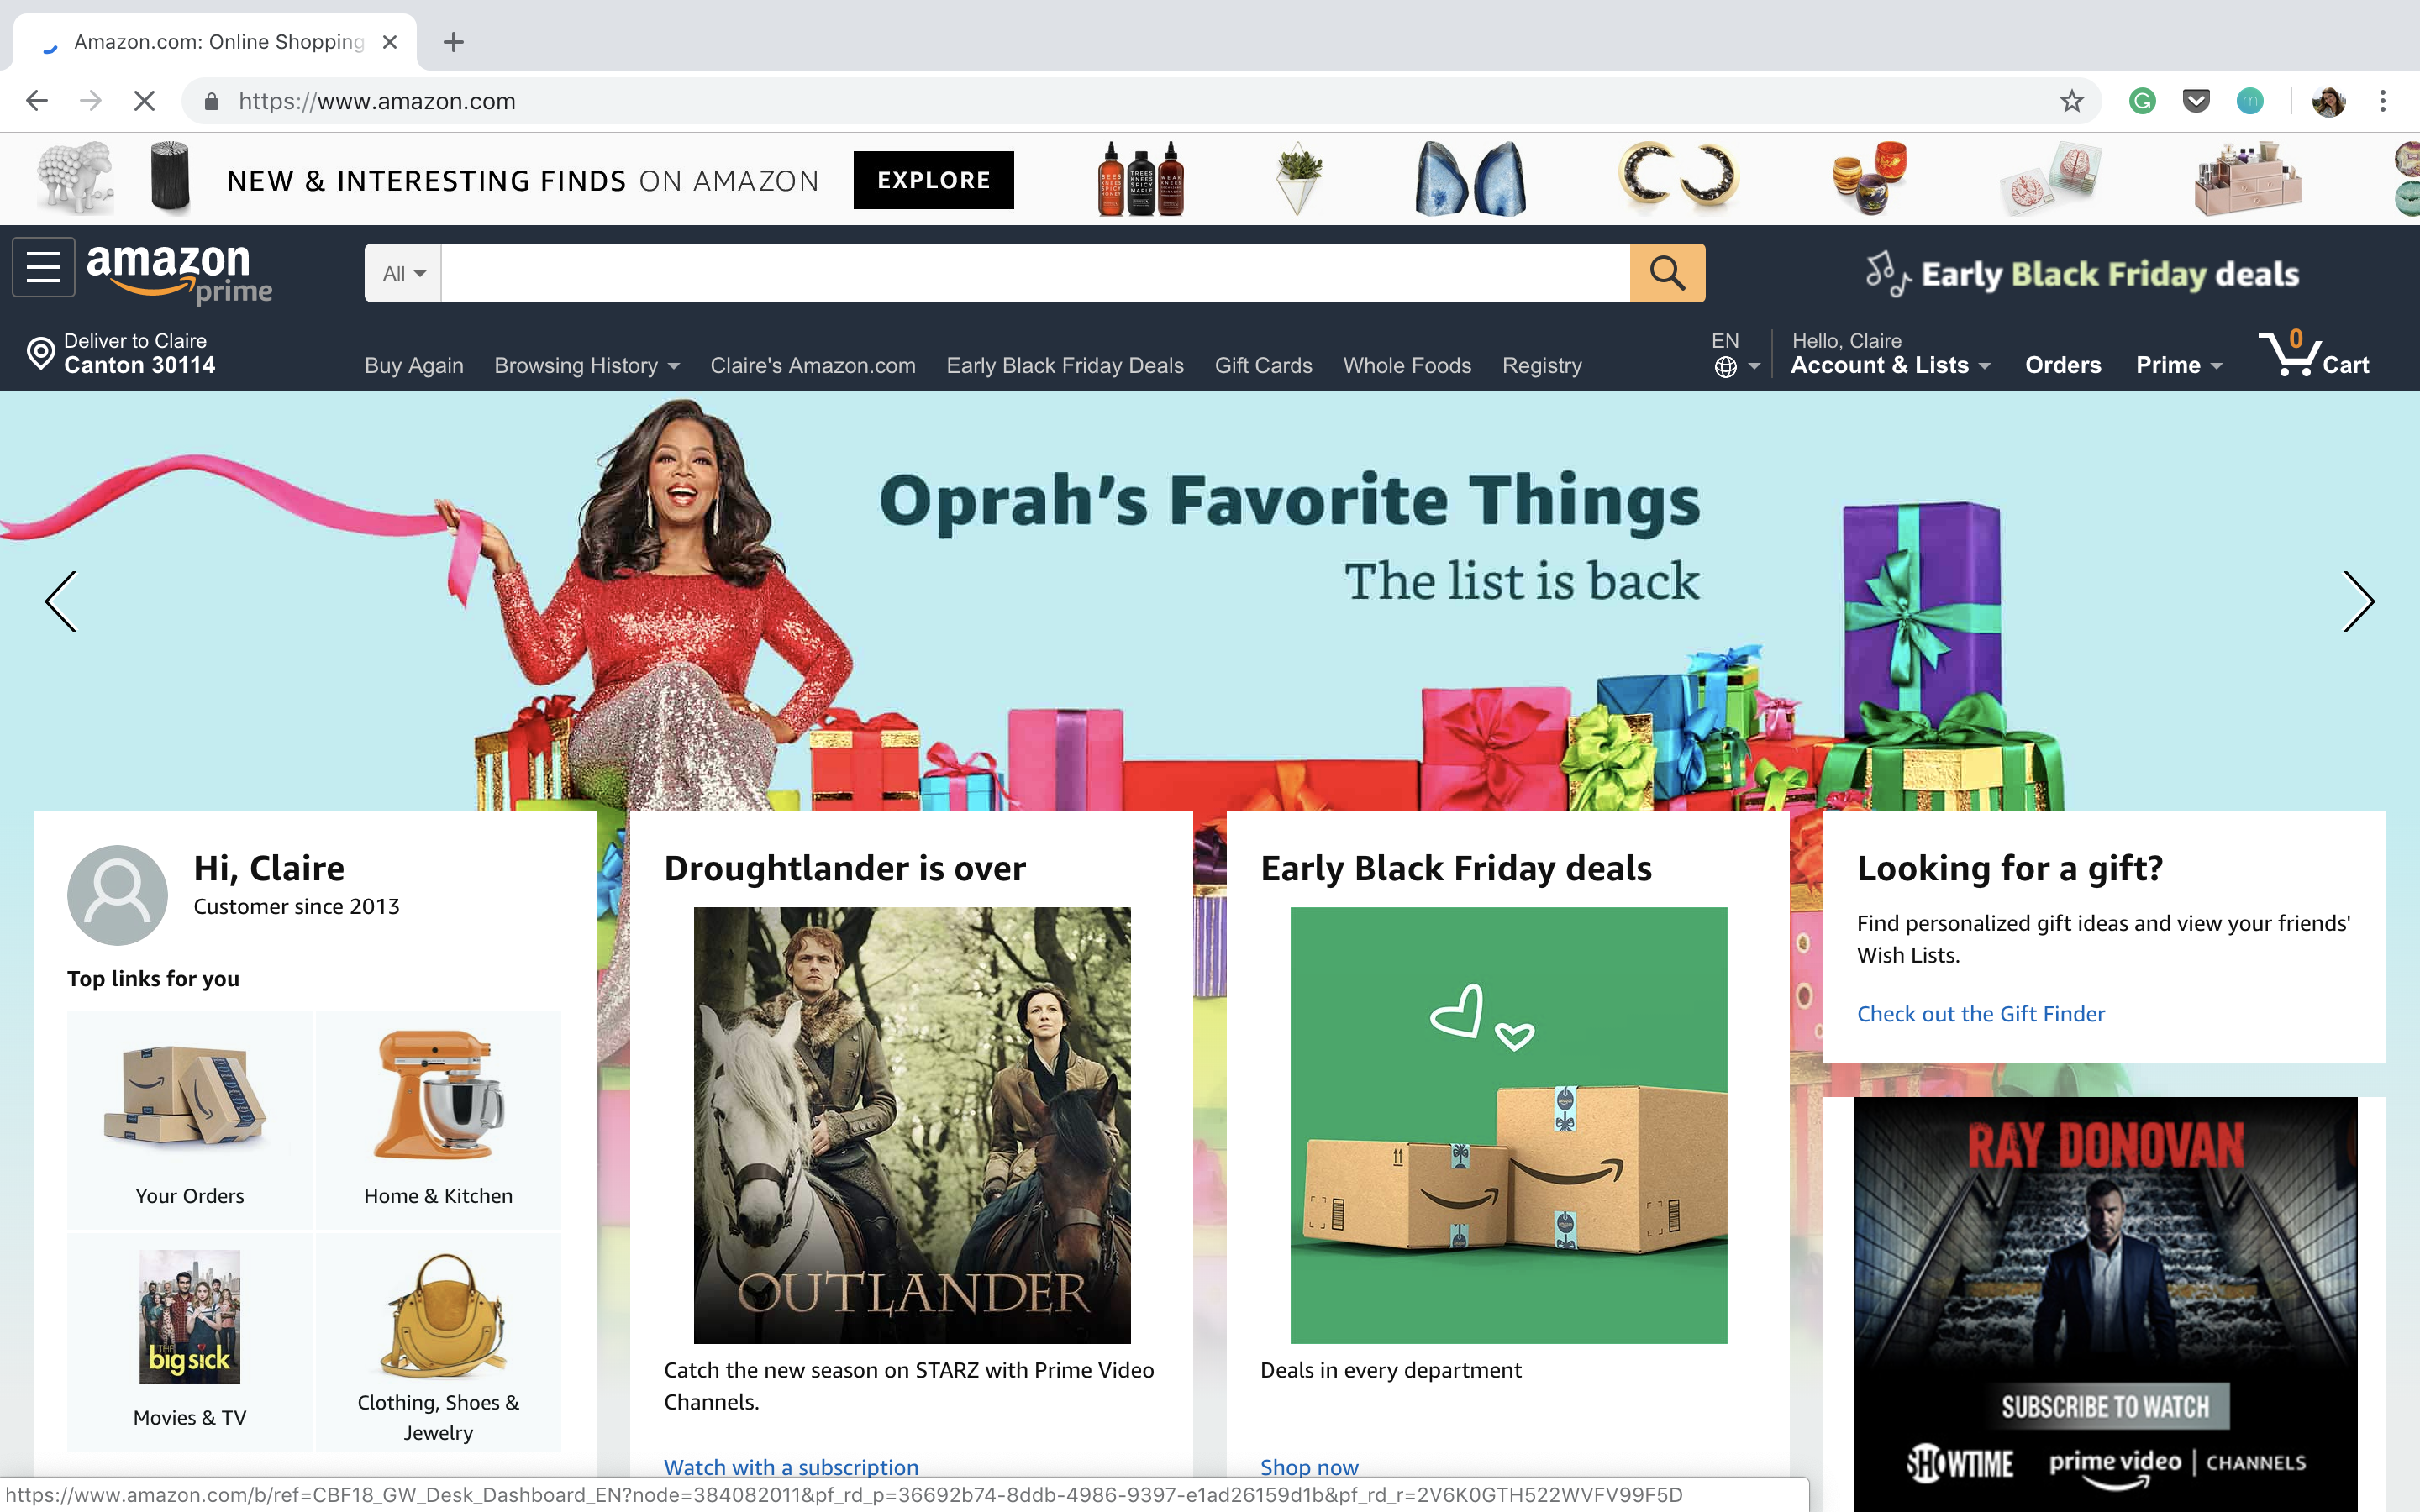 Dear Amazon: love your service, hate your homepage - UX